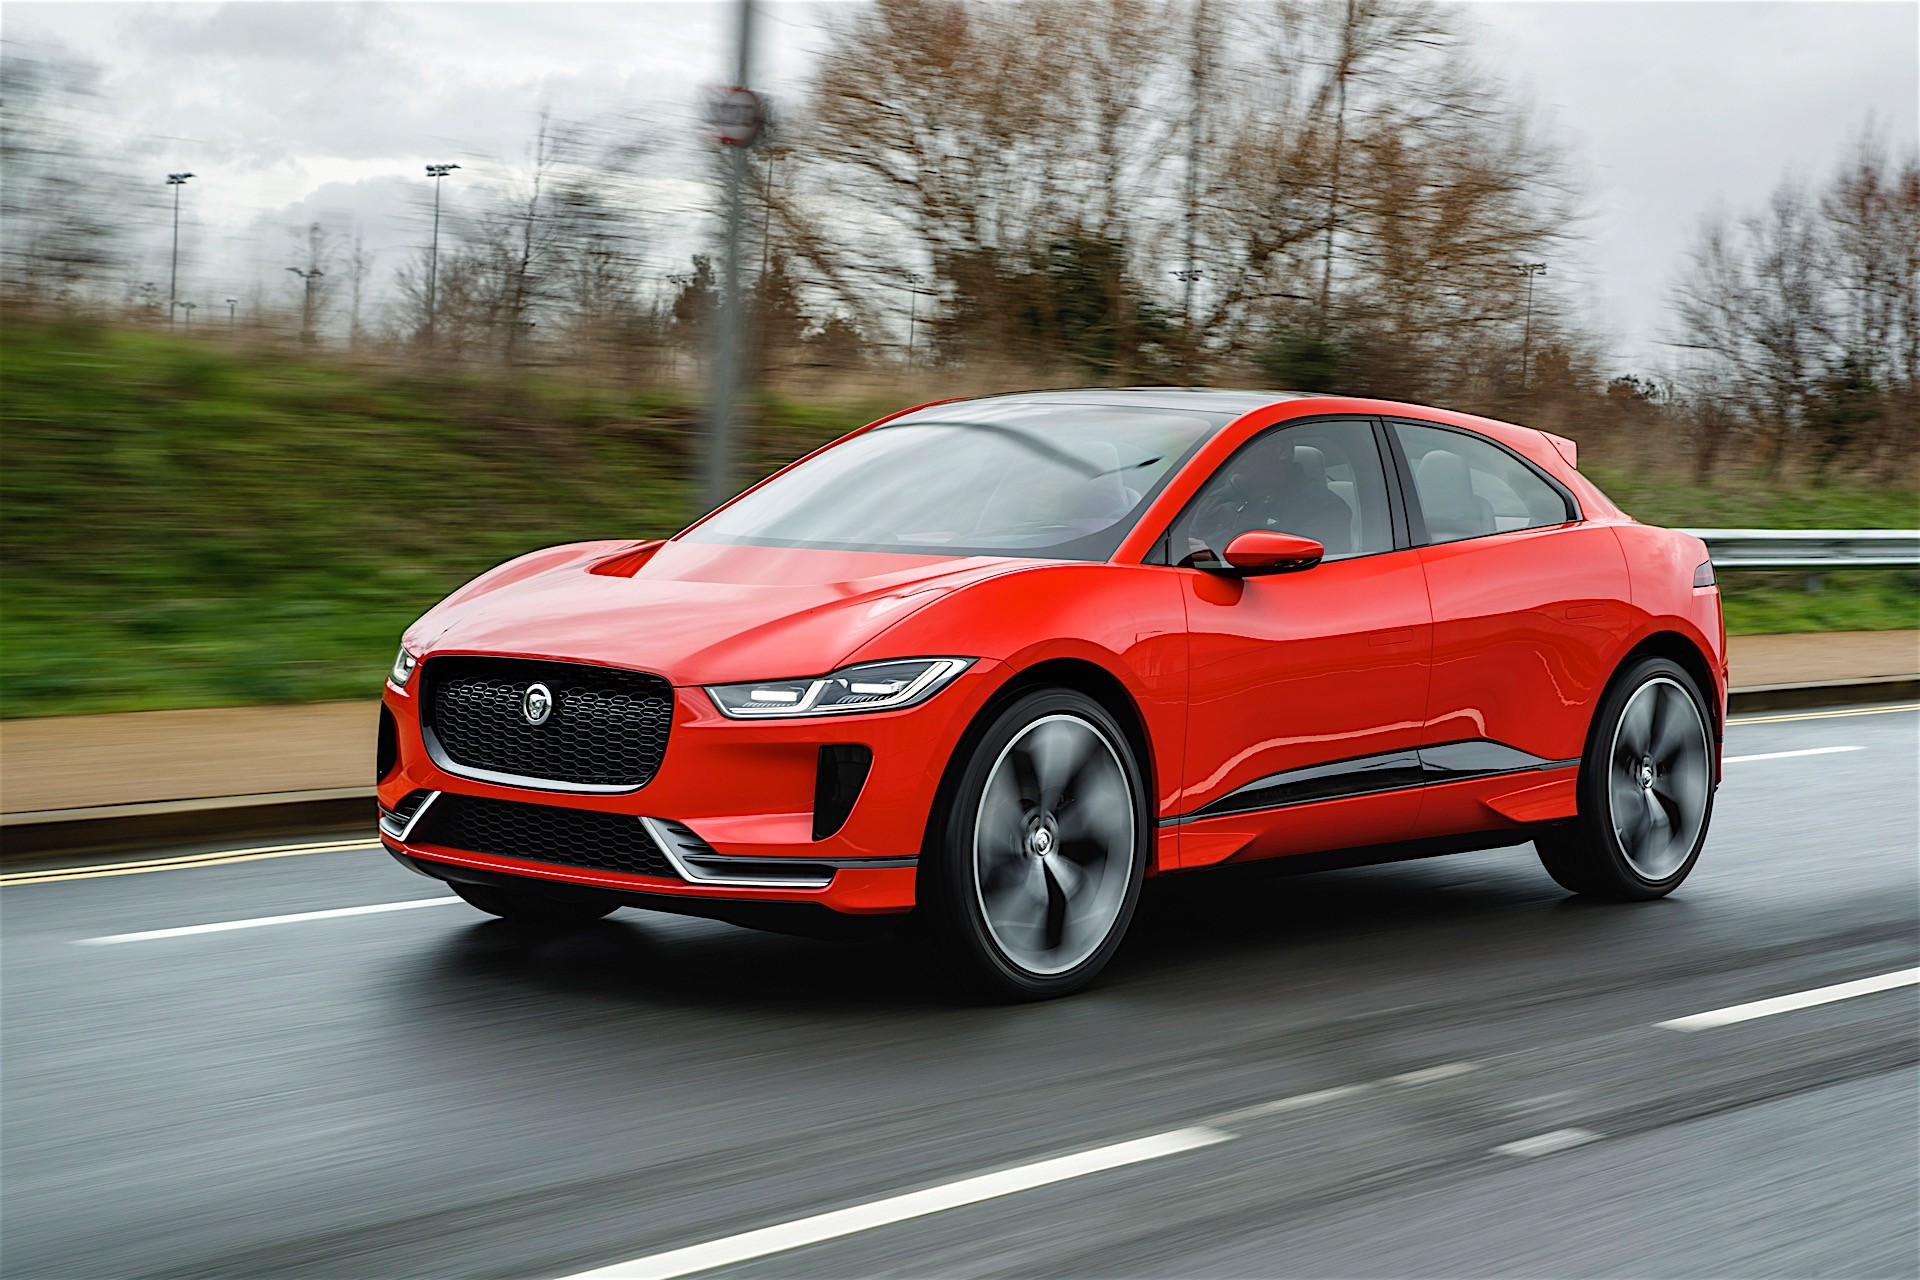 2019 Jaguar I-PACE Price Revealed as the Electric ...